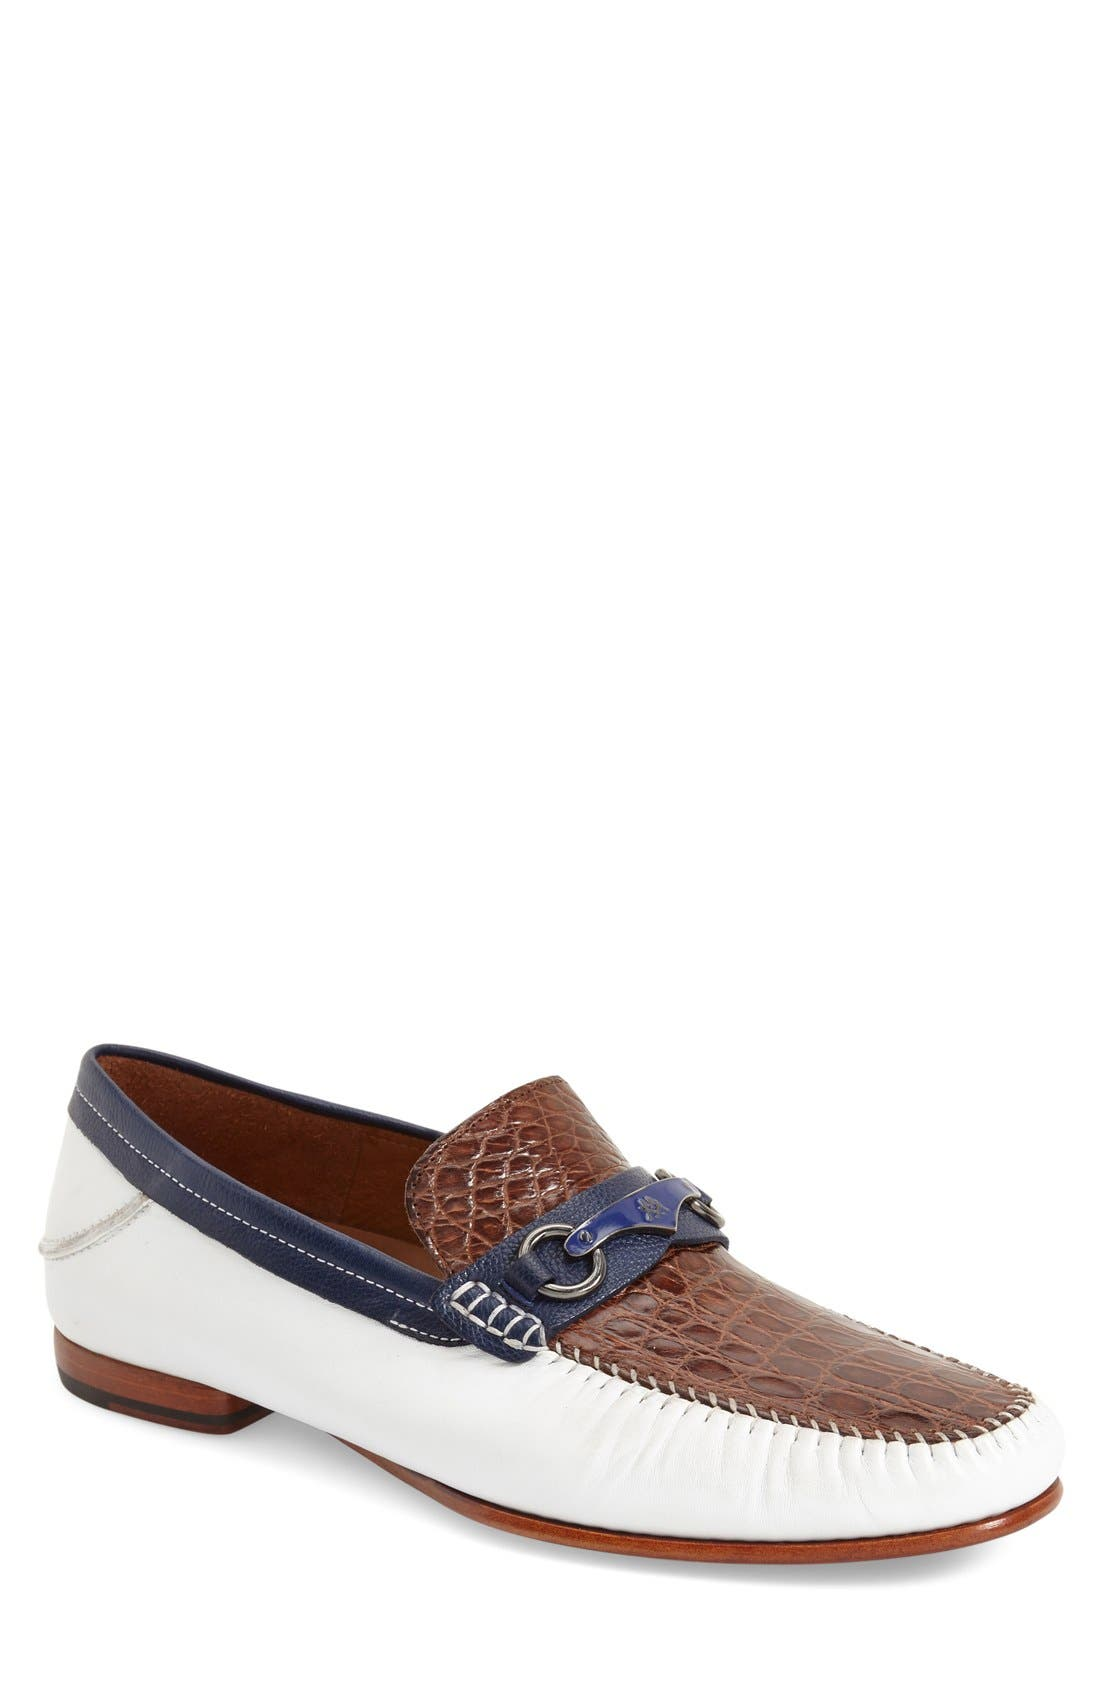 MEZLAN 'Gaudi Venetian' Genuine Crocodile Bit Loafer